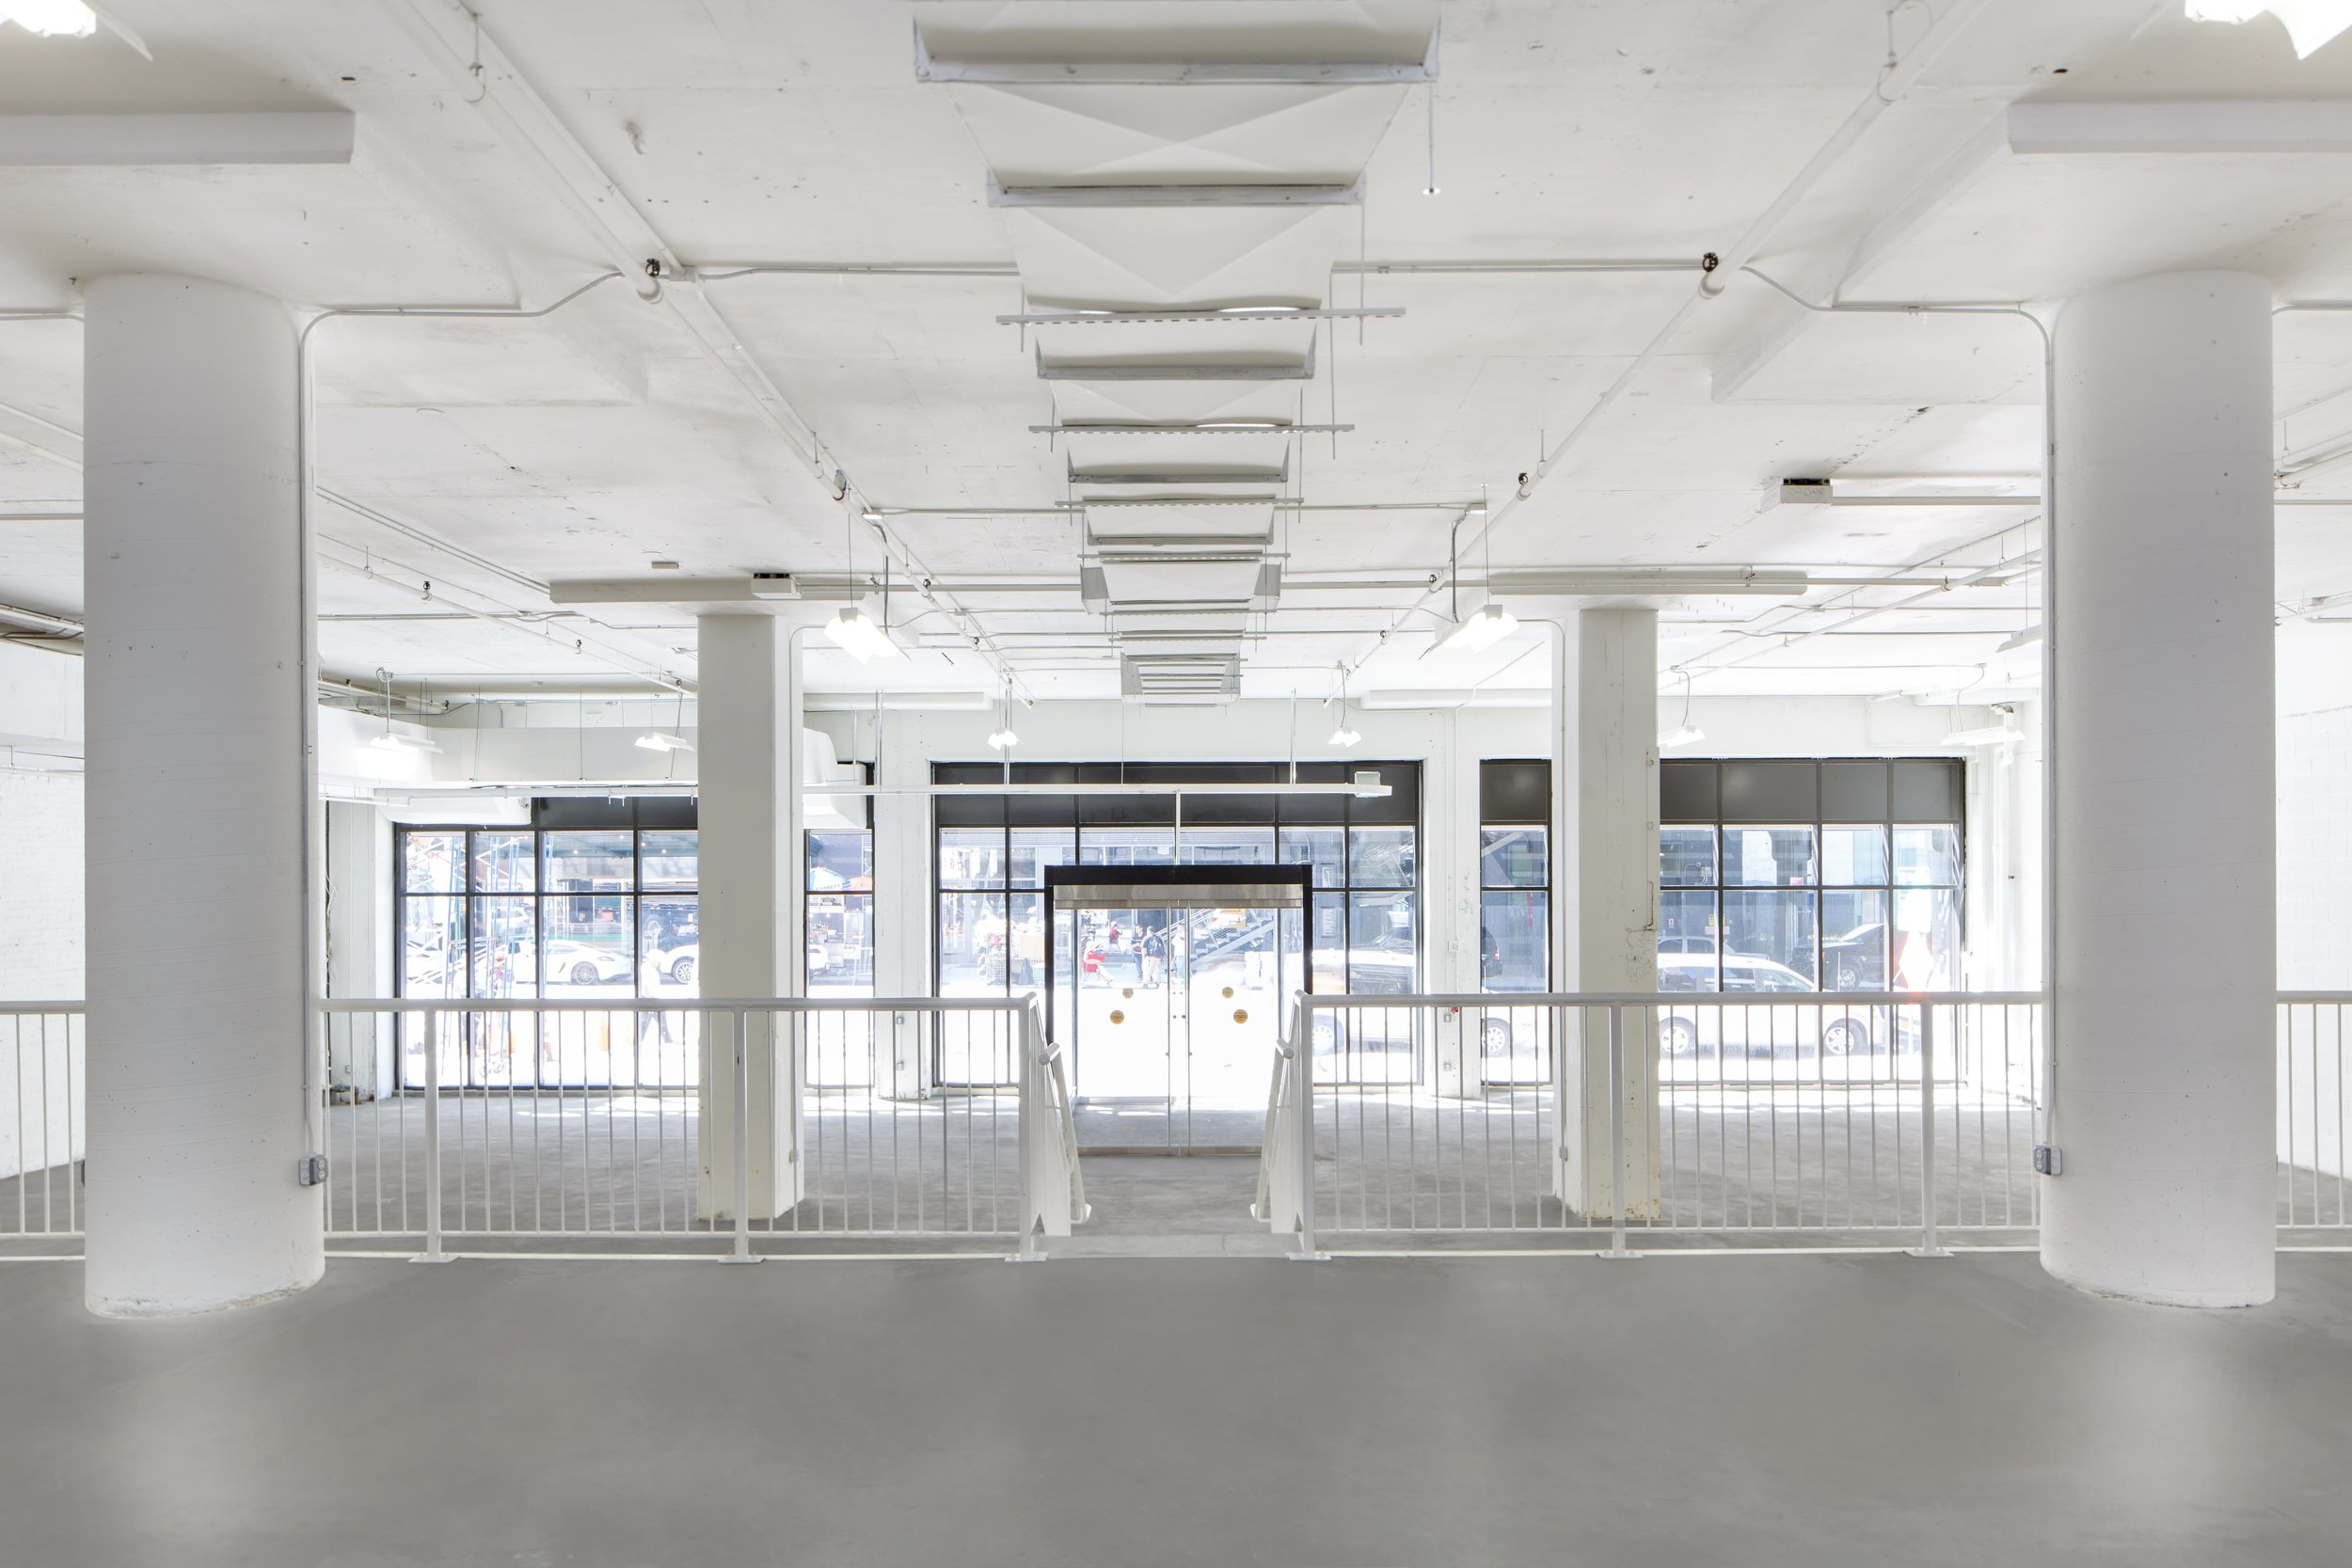 Interior shot from rear of the venue